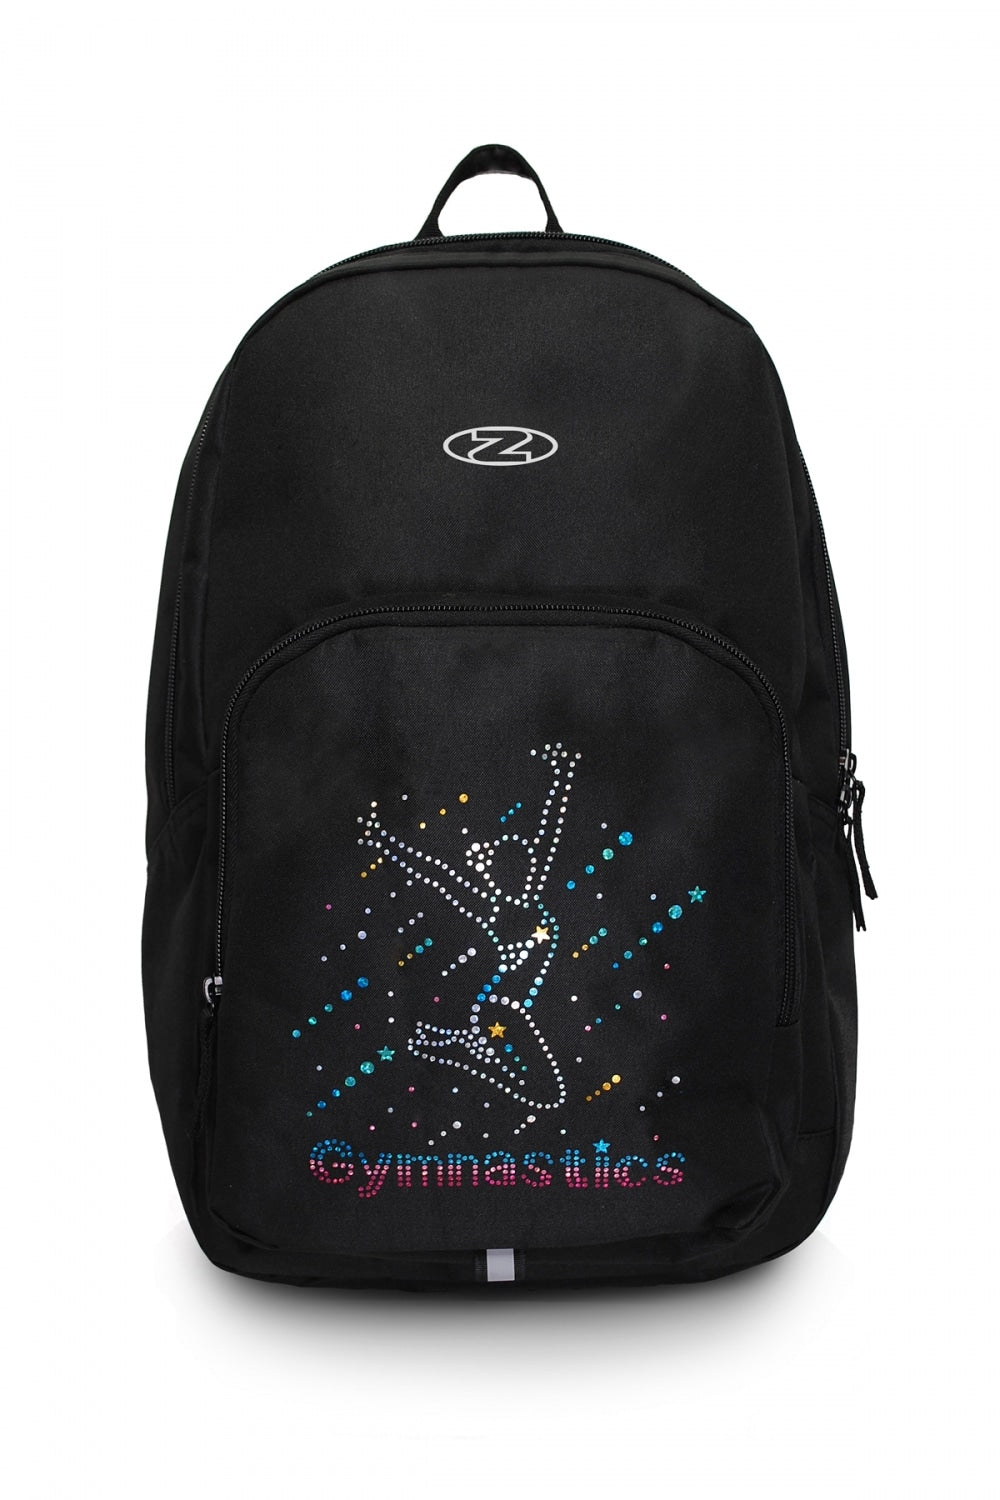 The Zone Gymnastics Back Pack